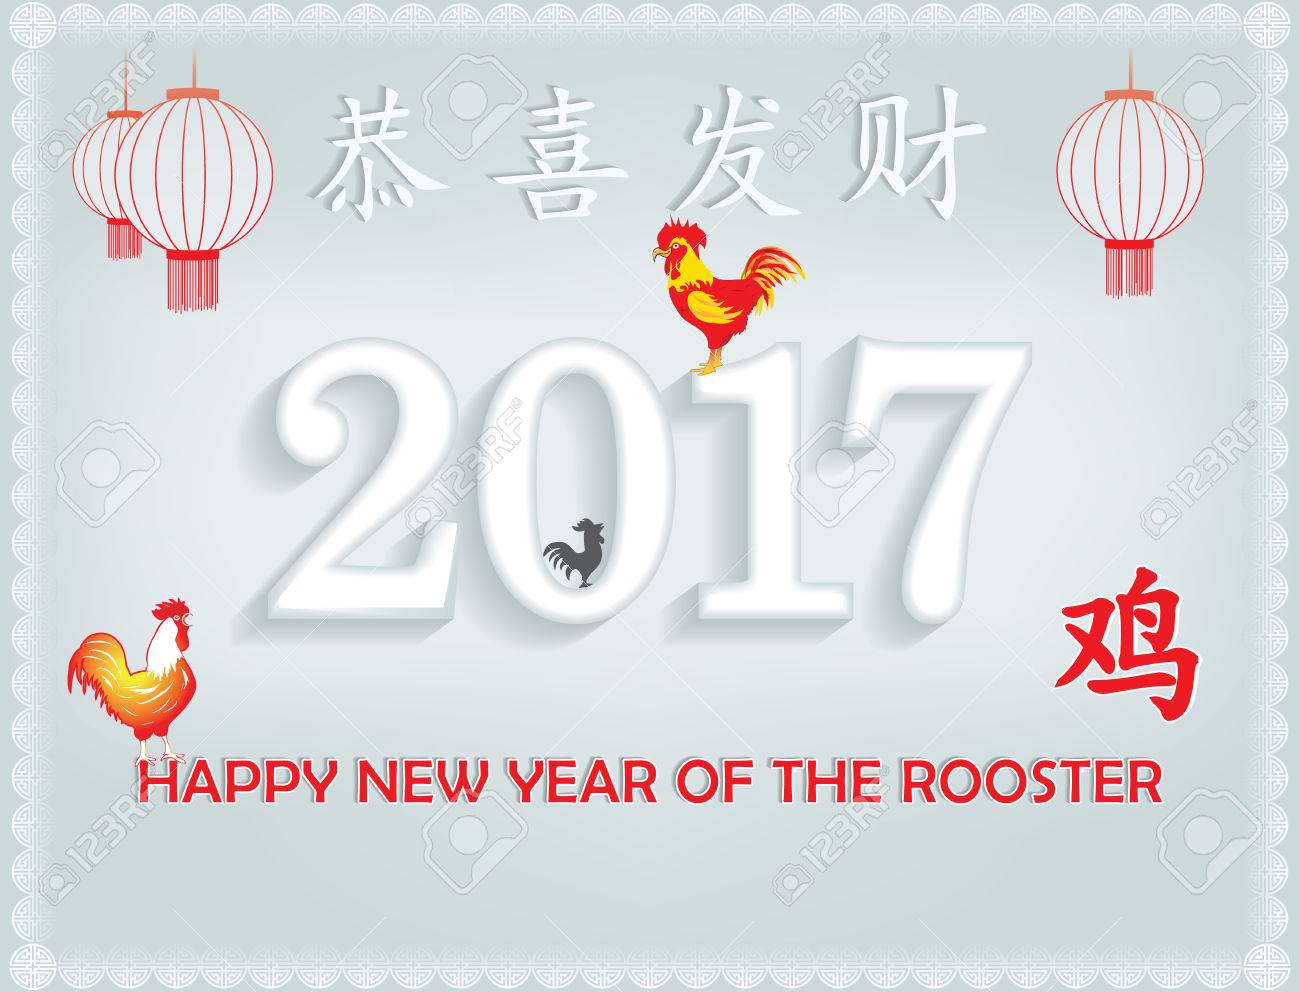 Greeting Card For Chinese New Year Of Rooster 2017 Also For